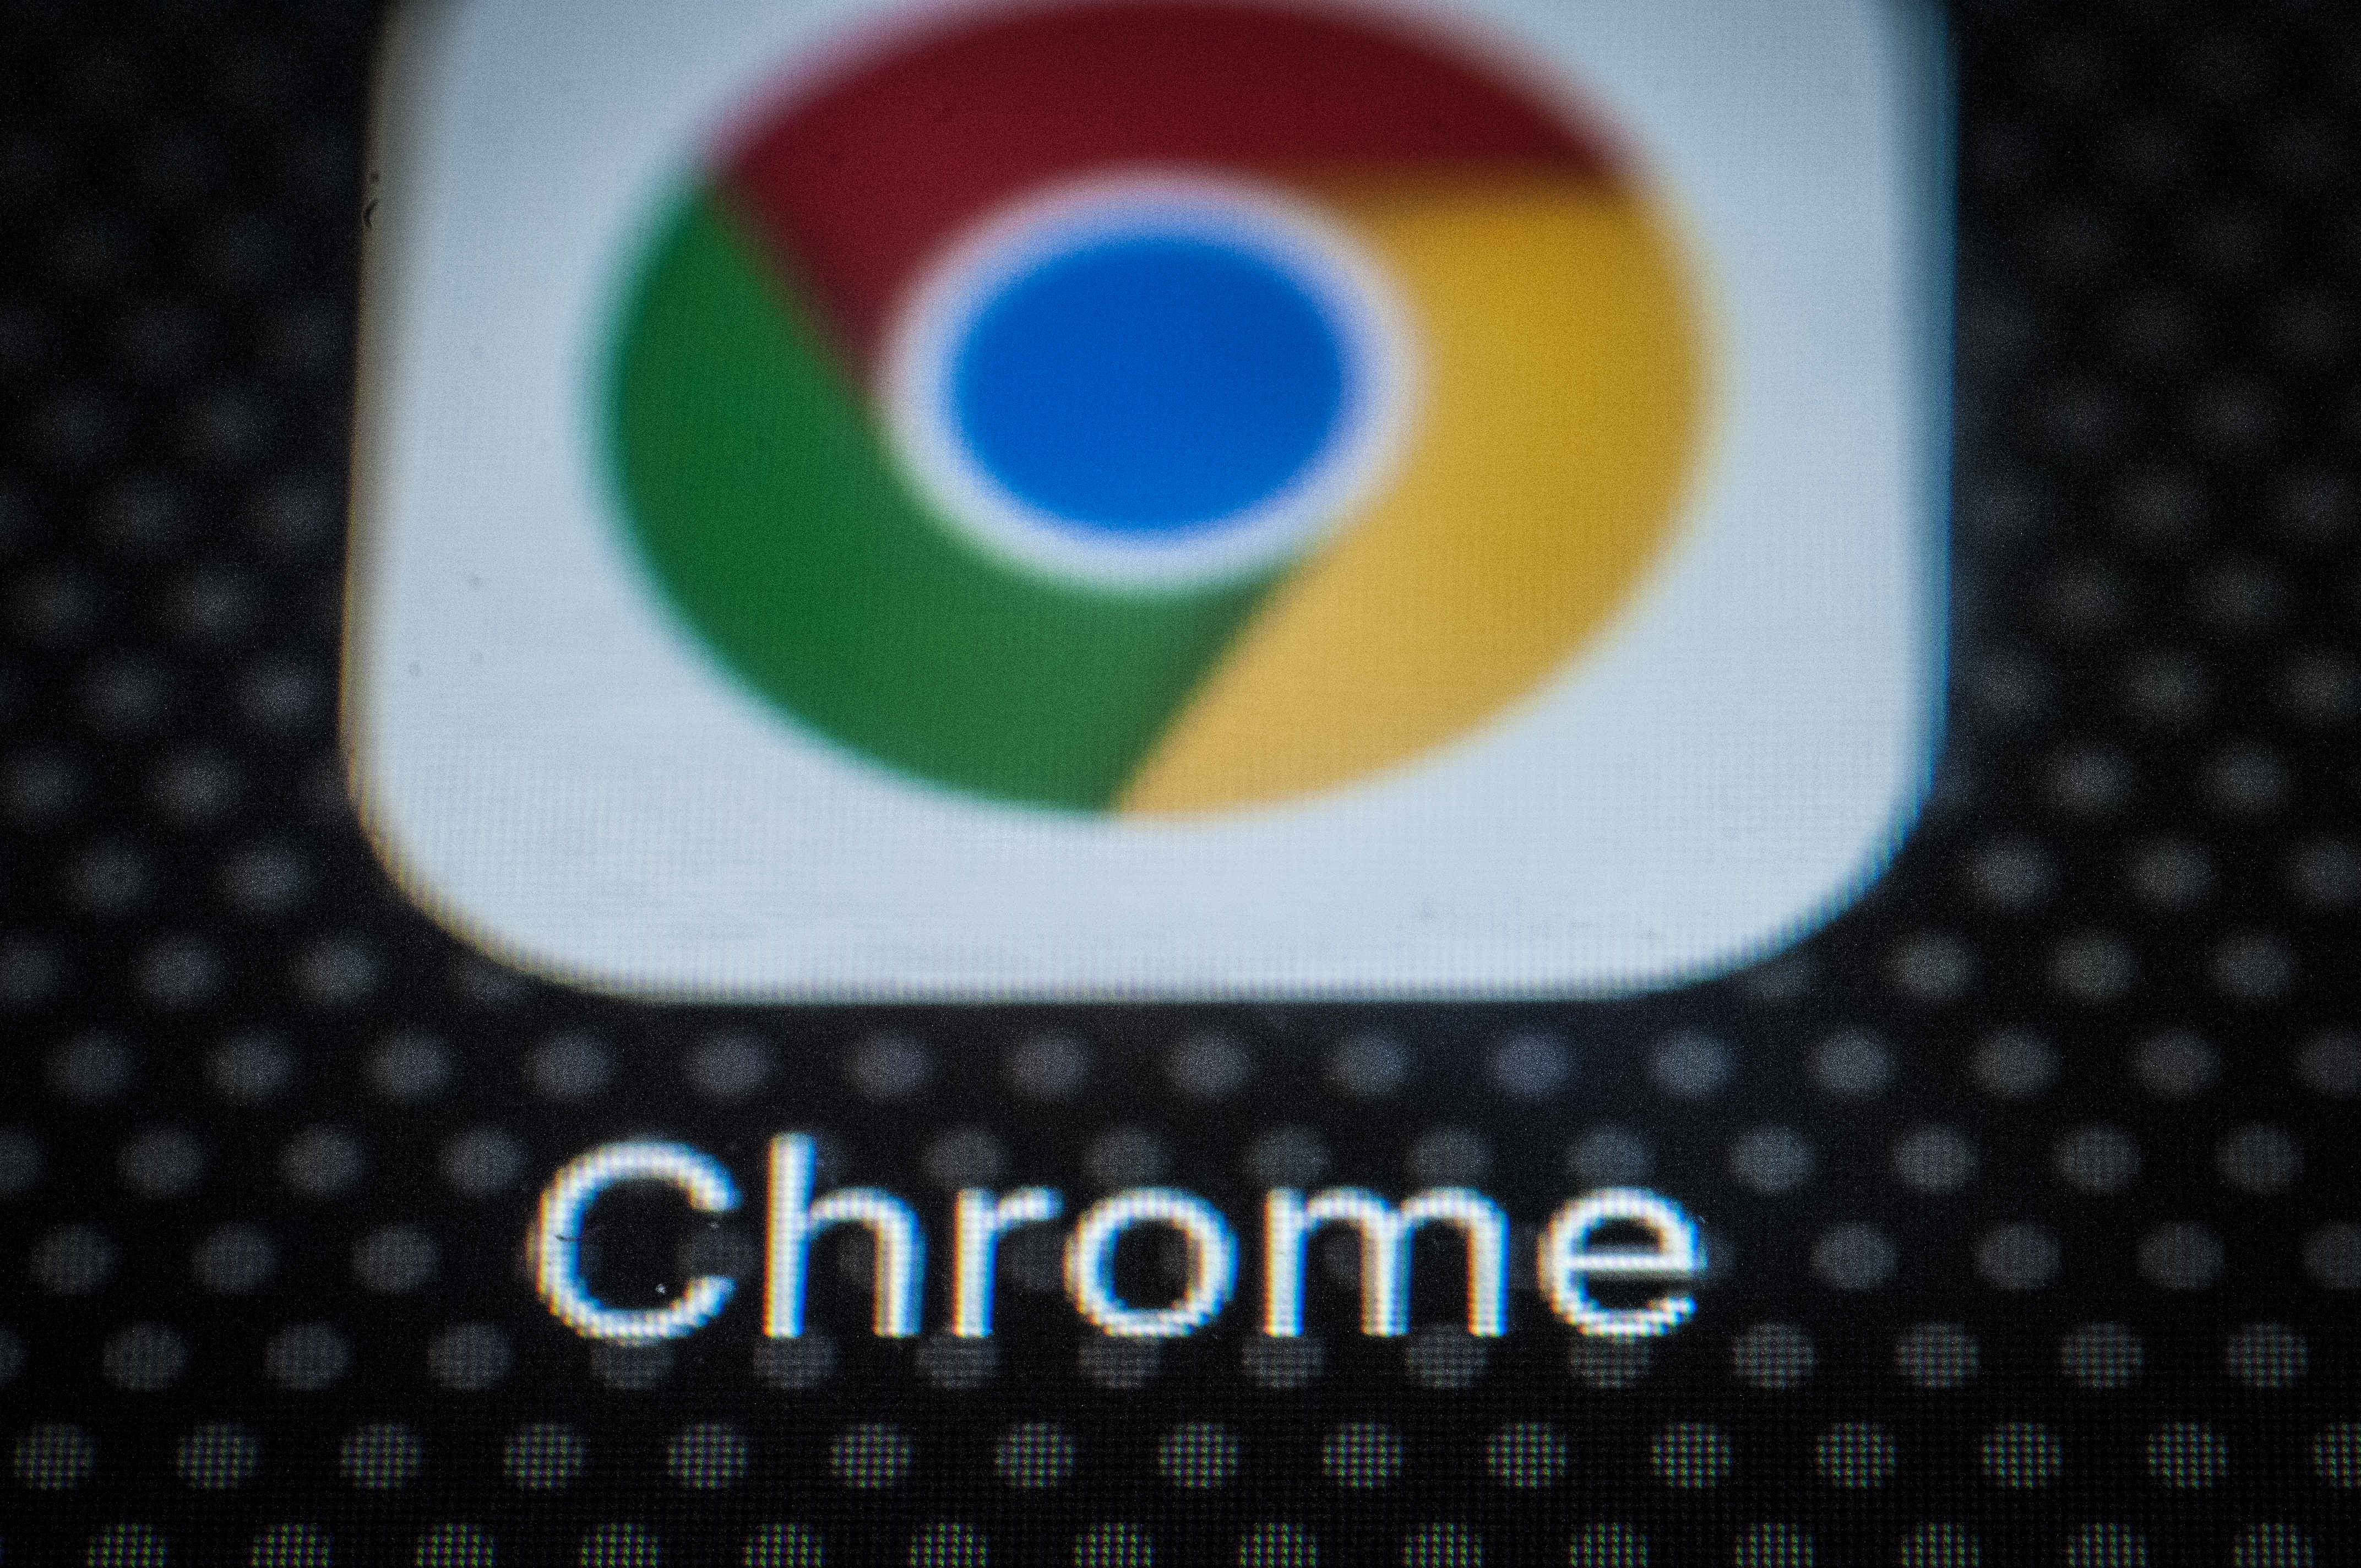 The Chrome browser app for mobile devices is seen on the screen of a portable device.